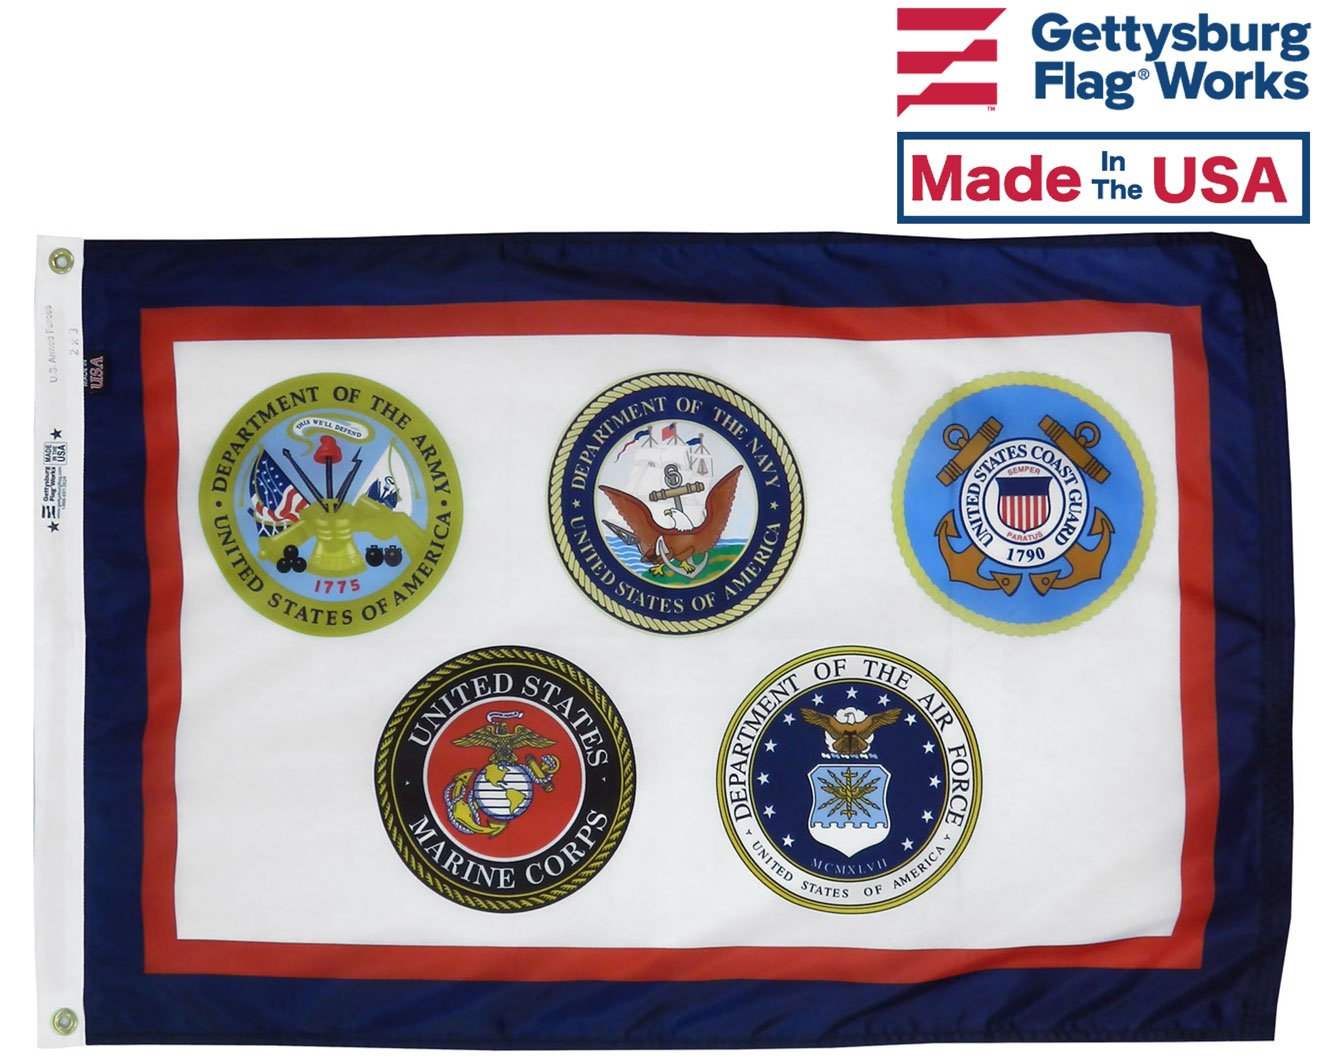 WE SUPPORT OUR TROOPS Advertising Vinyl Banner Flag Sign Many Sizes USA MILITARY